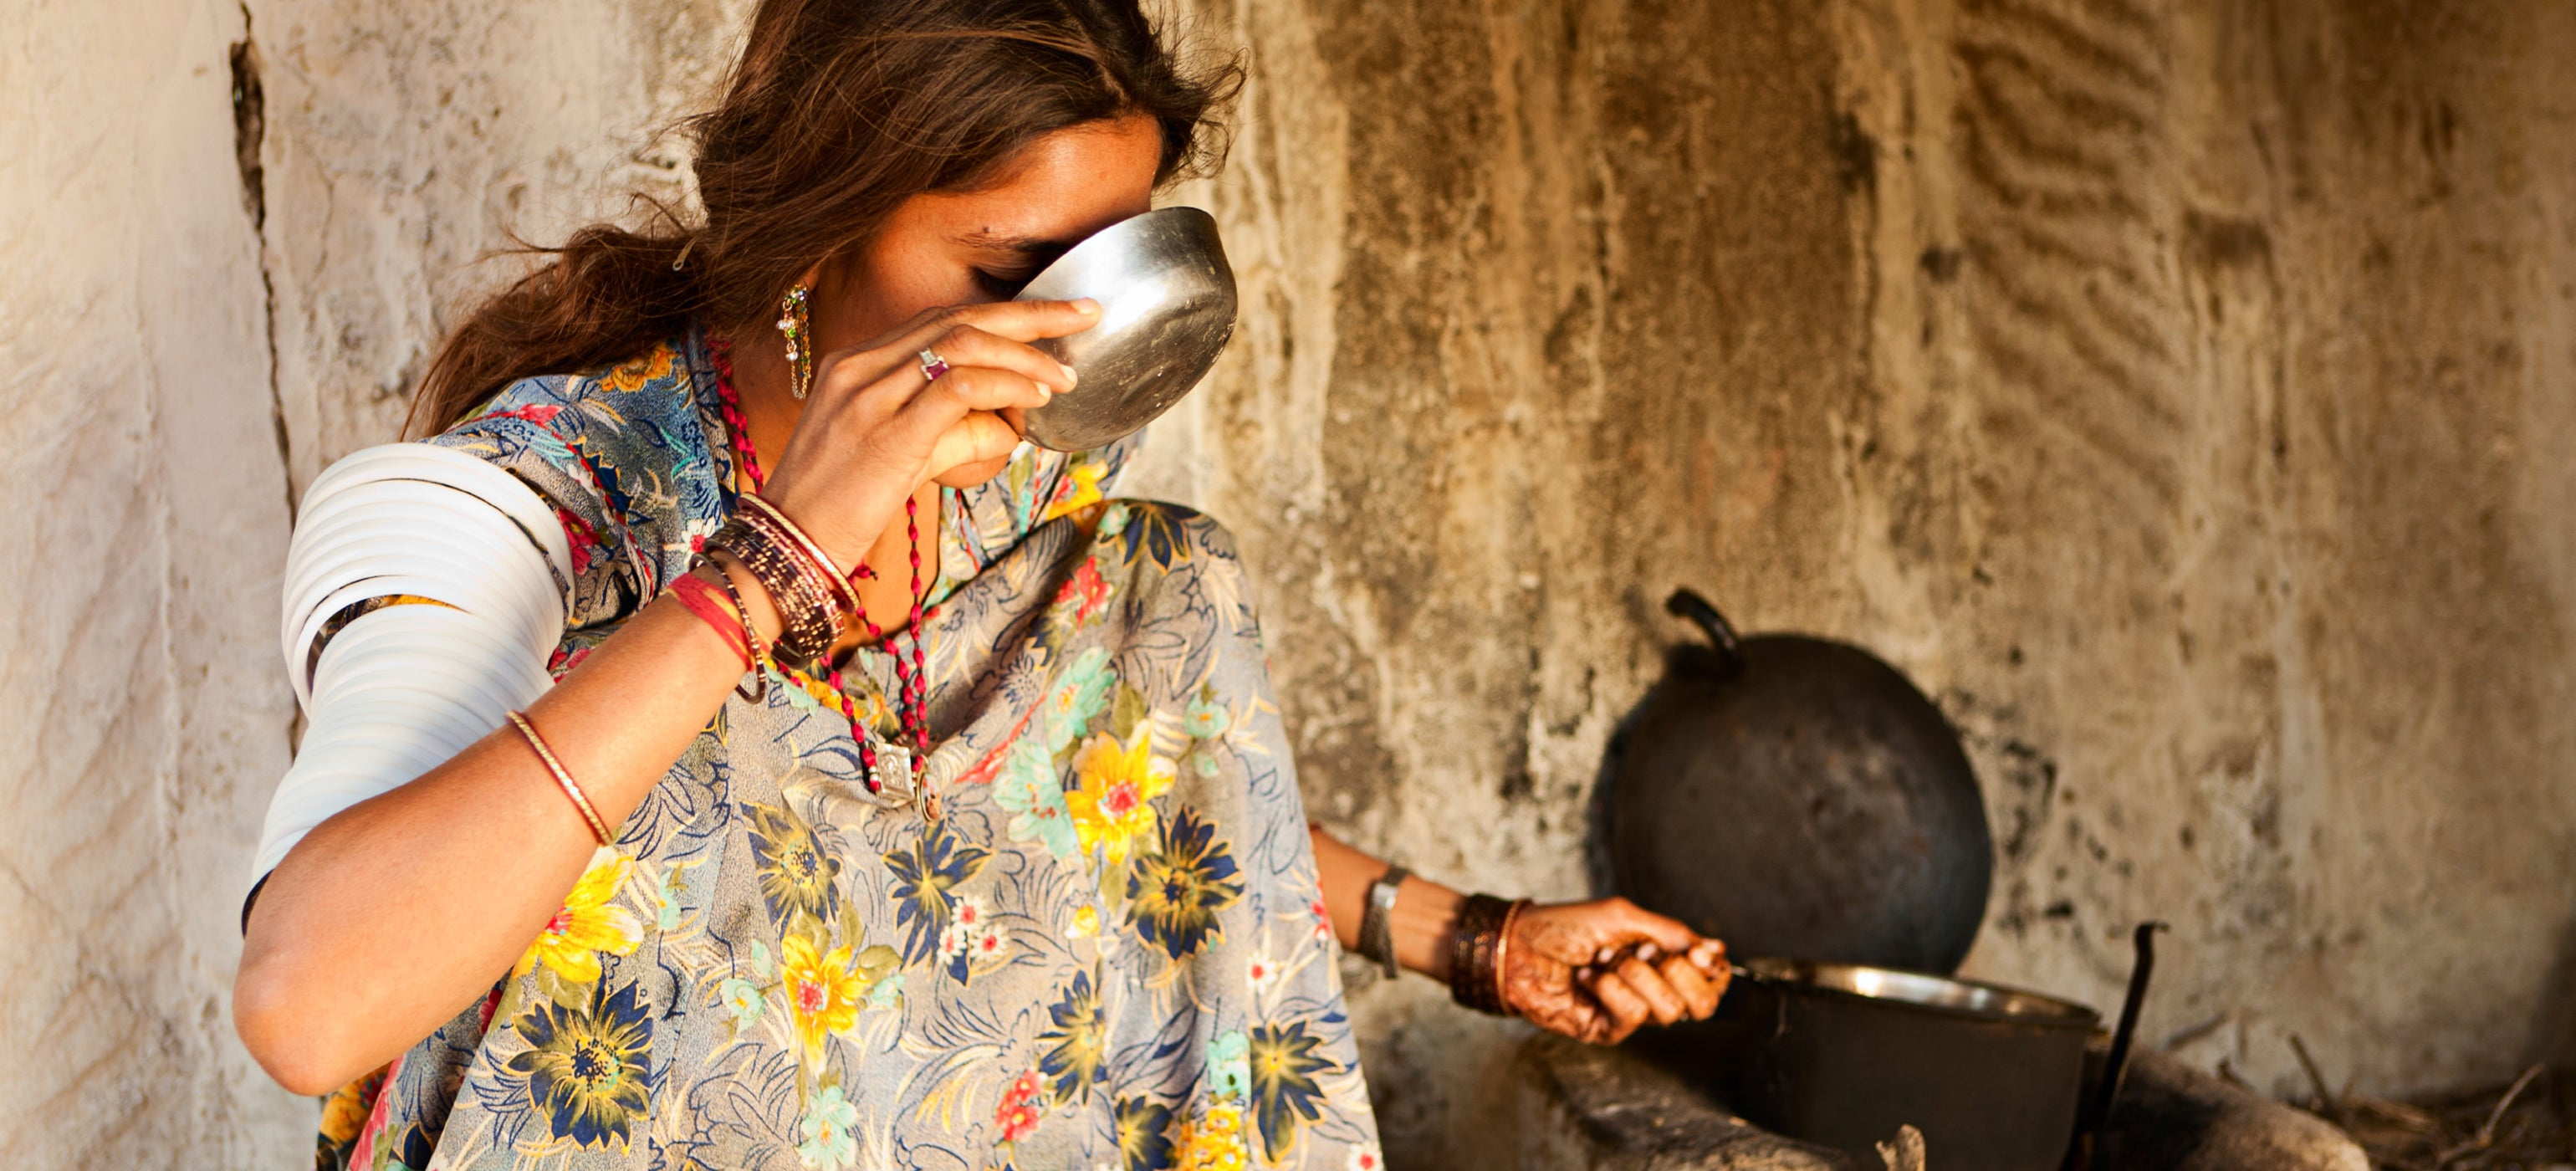 Where Does Chai Come From